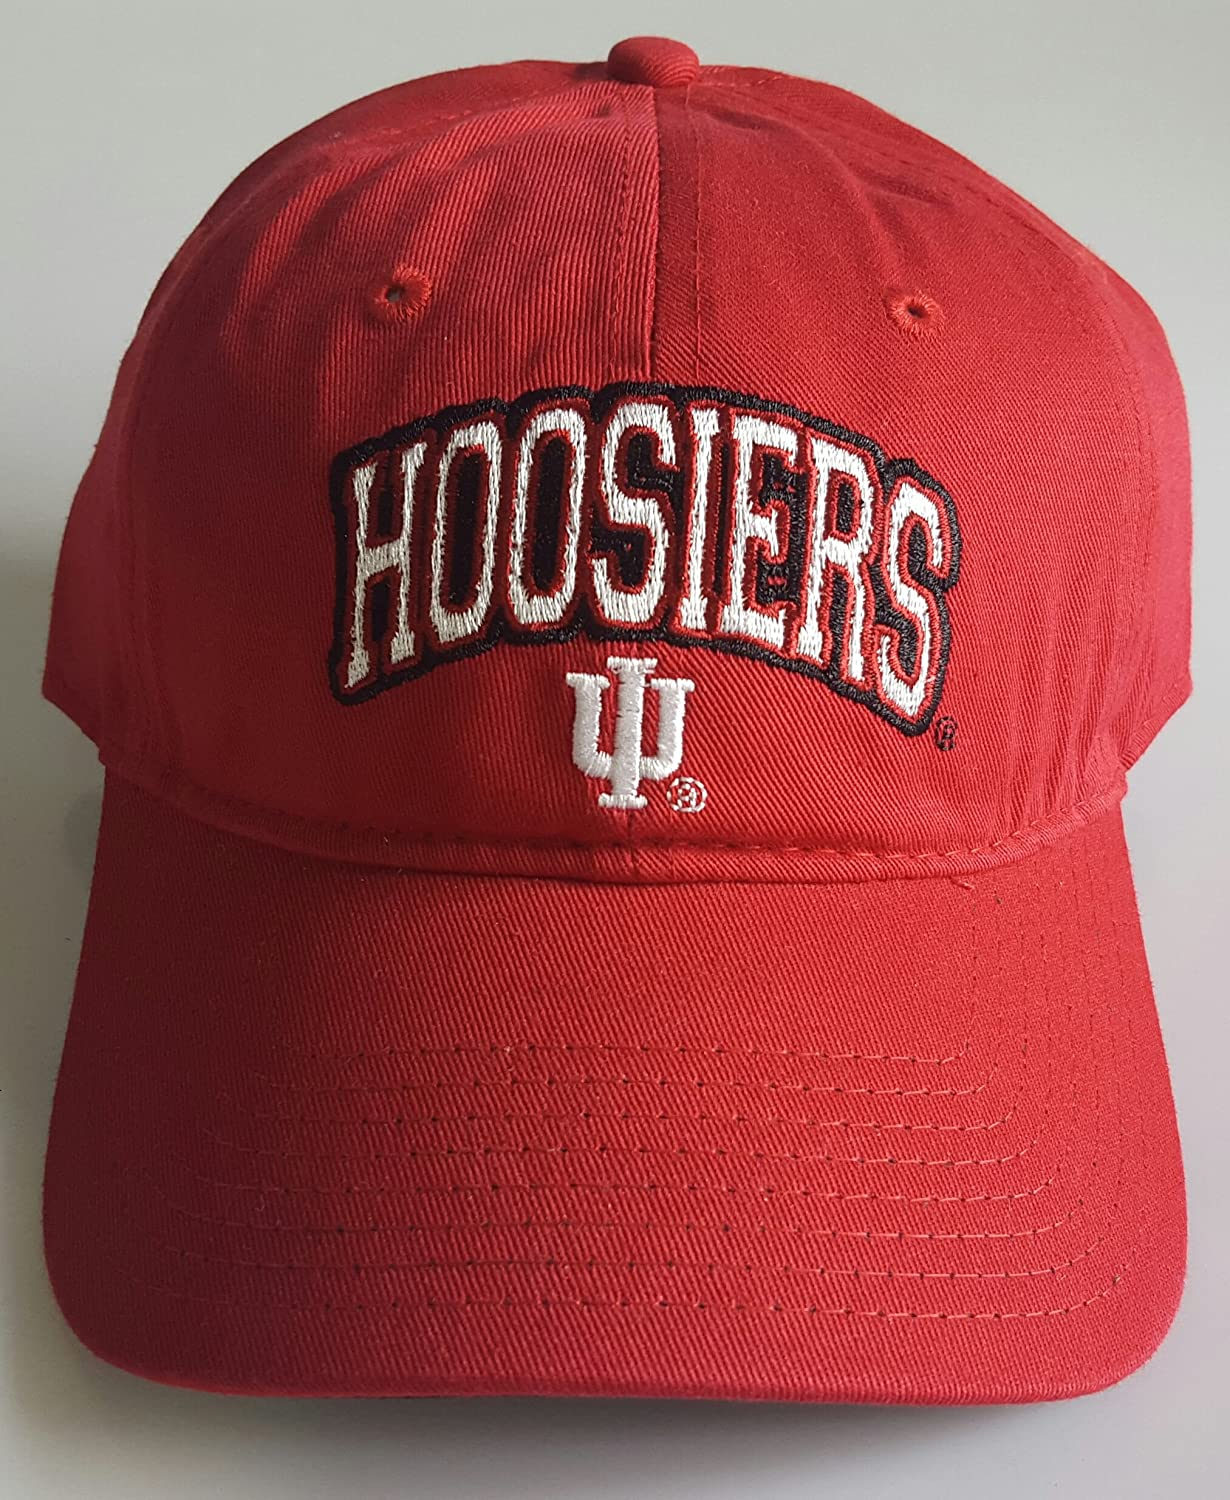 New Indiana Hoosiers Embroidered Adjustable Buckle Back Cap   B079D3R9LP